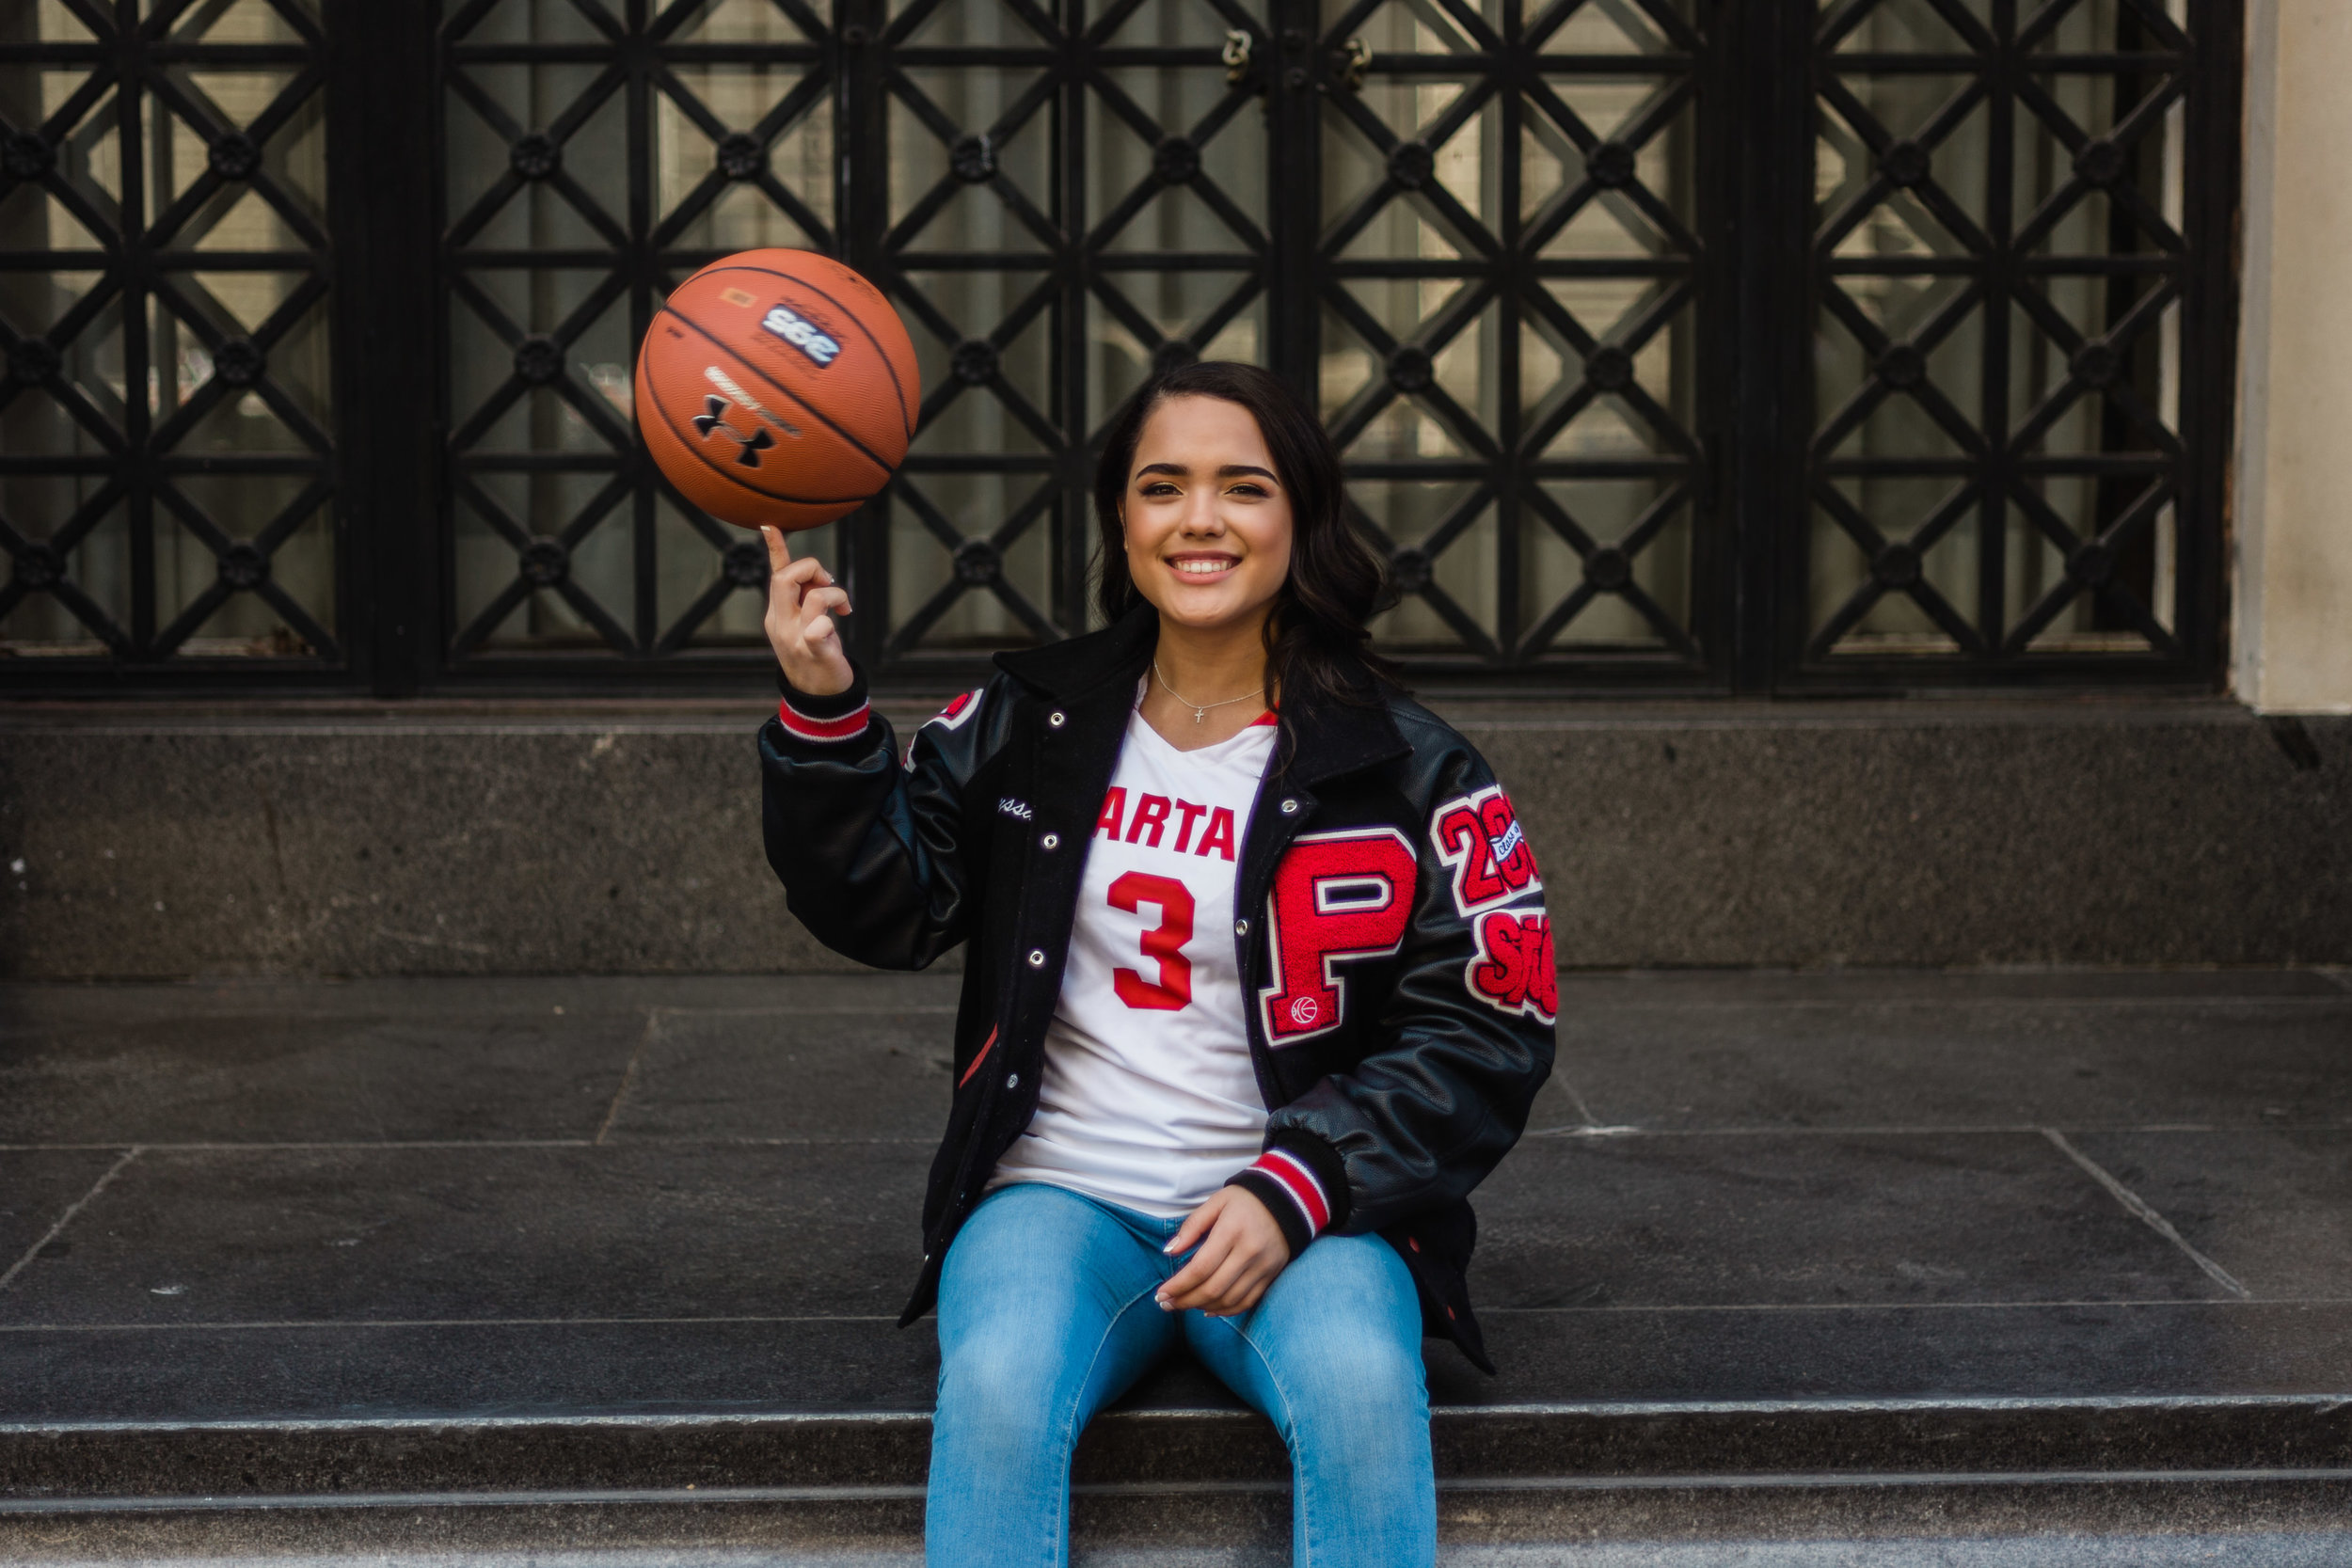 Alyssa incorporated basketball into her shoot because that was her biggest passion in high school.